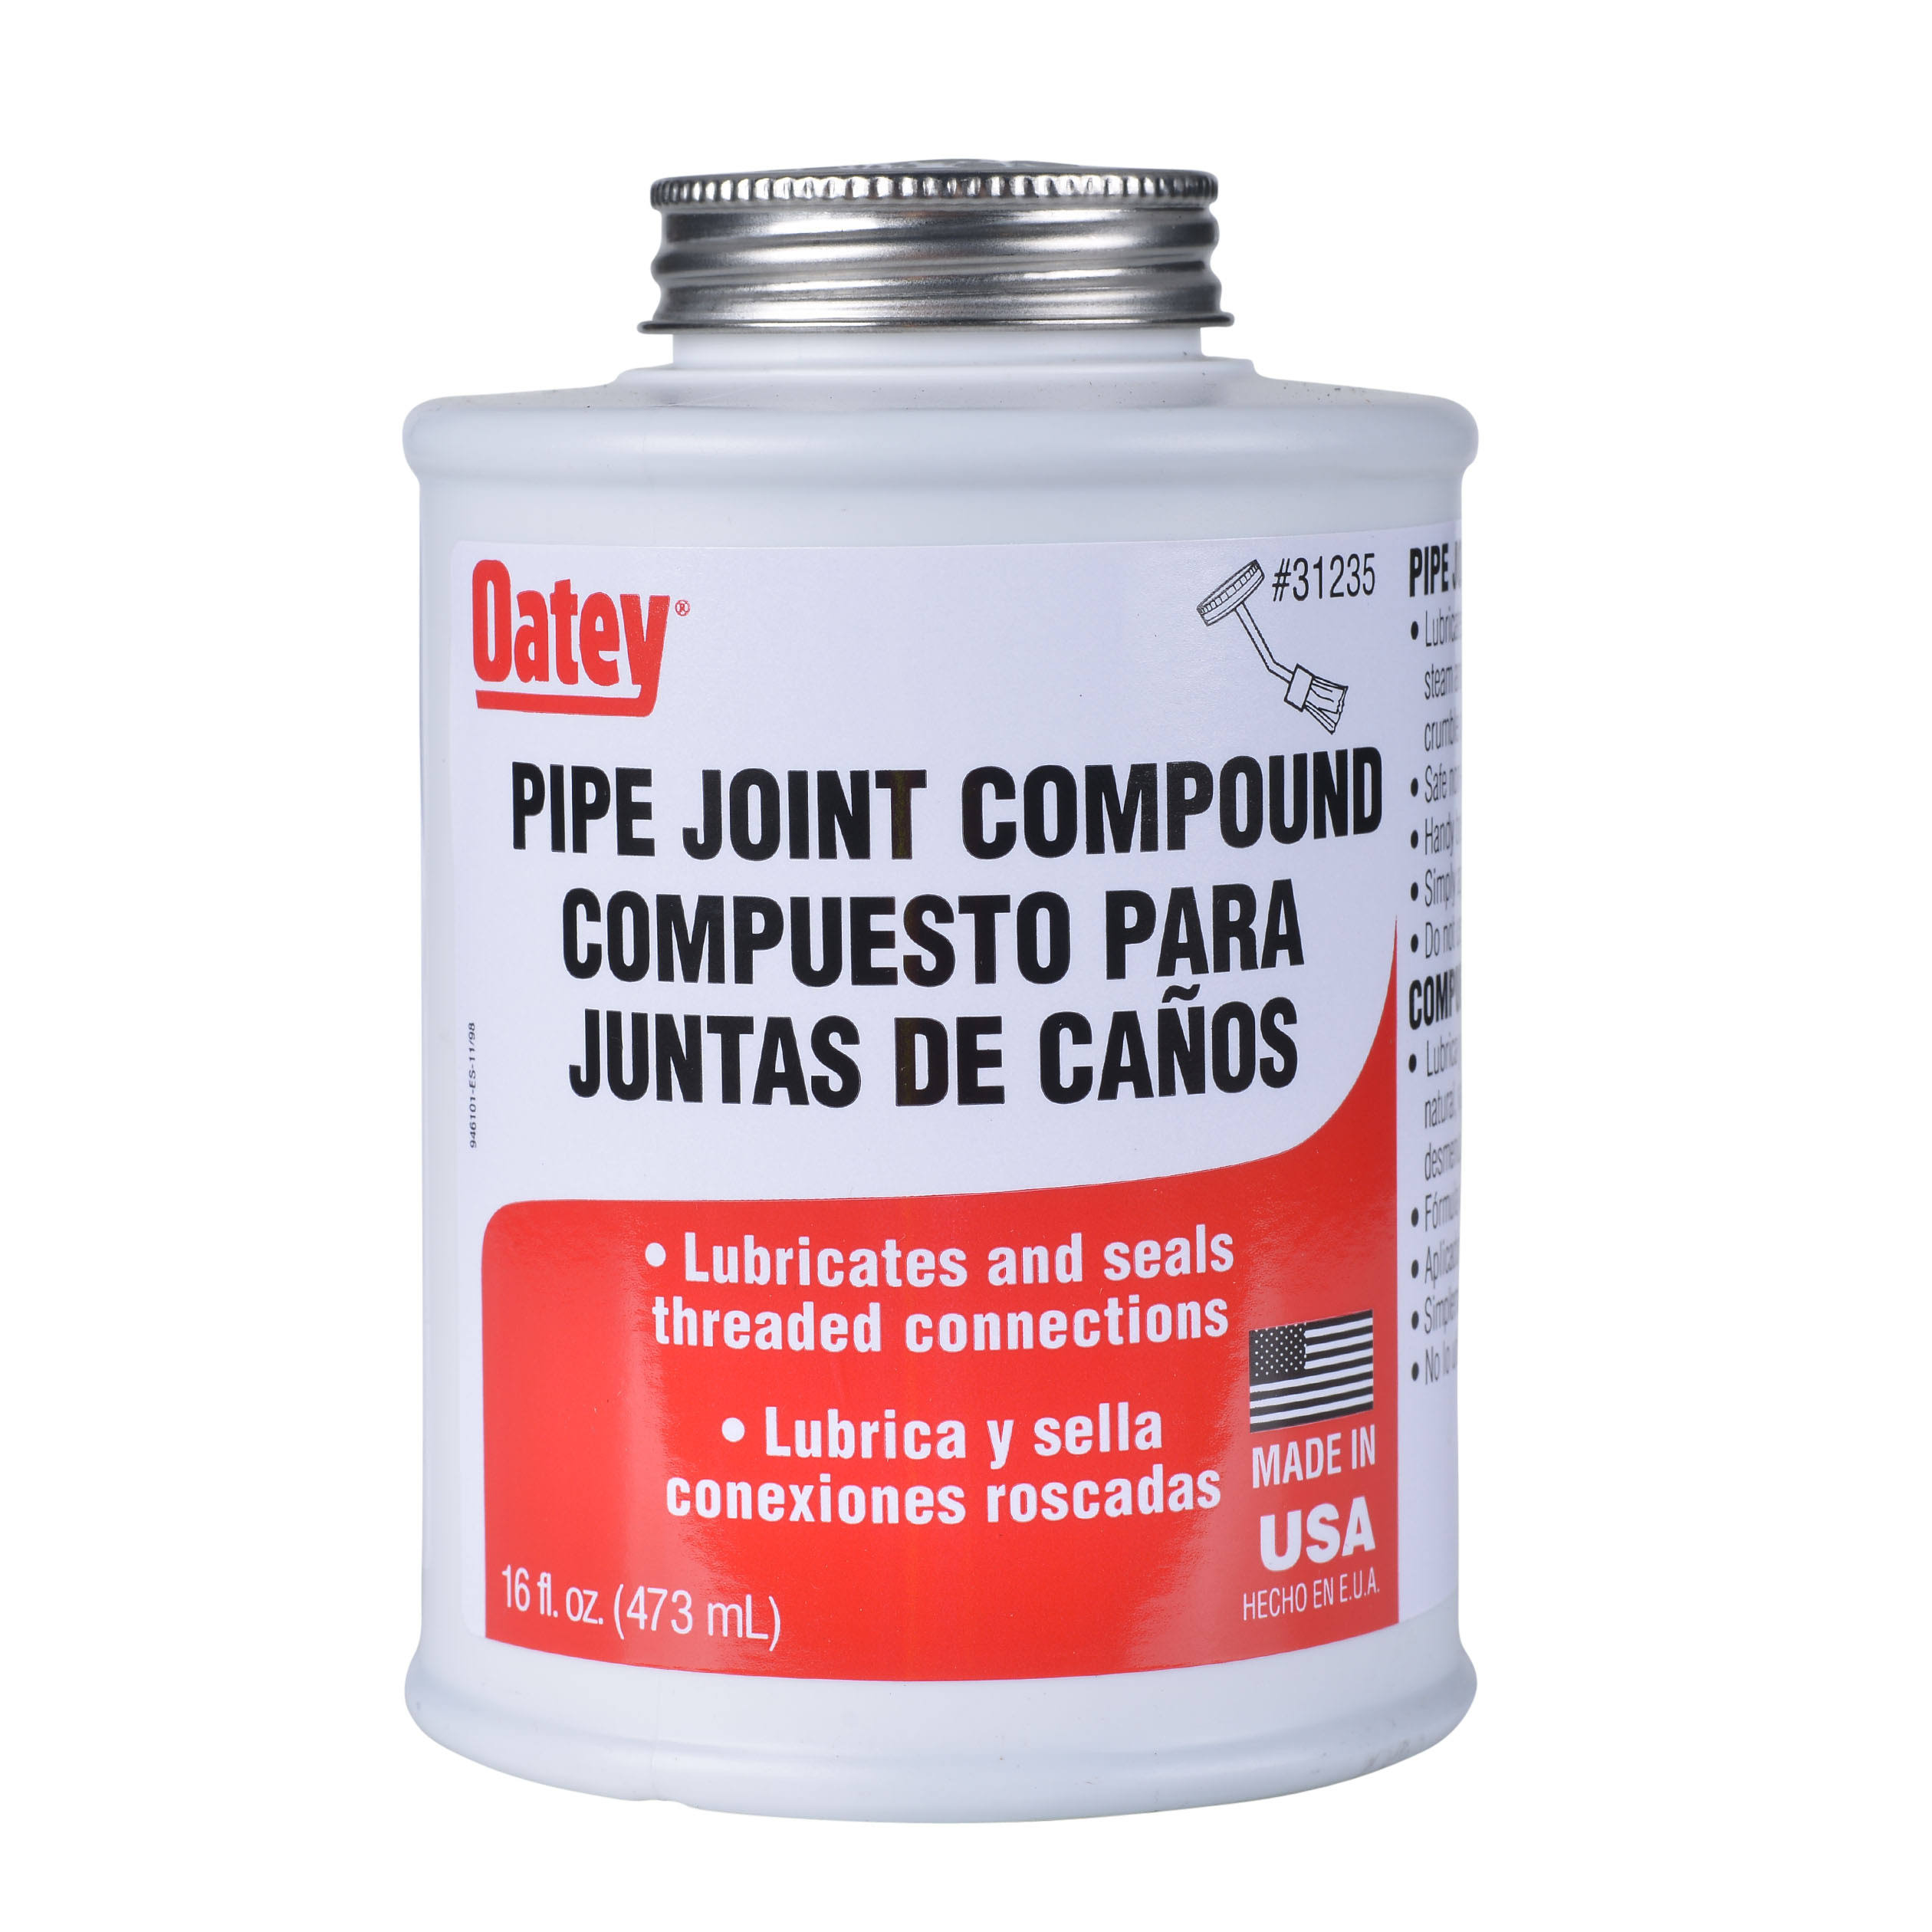 Oatey Pipe Joint Compound - 1oz